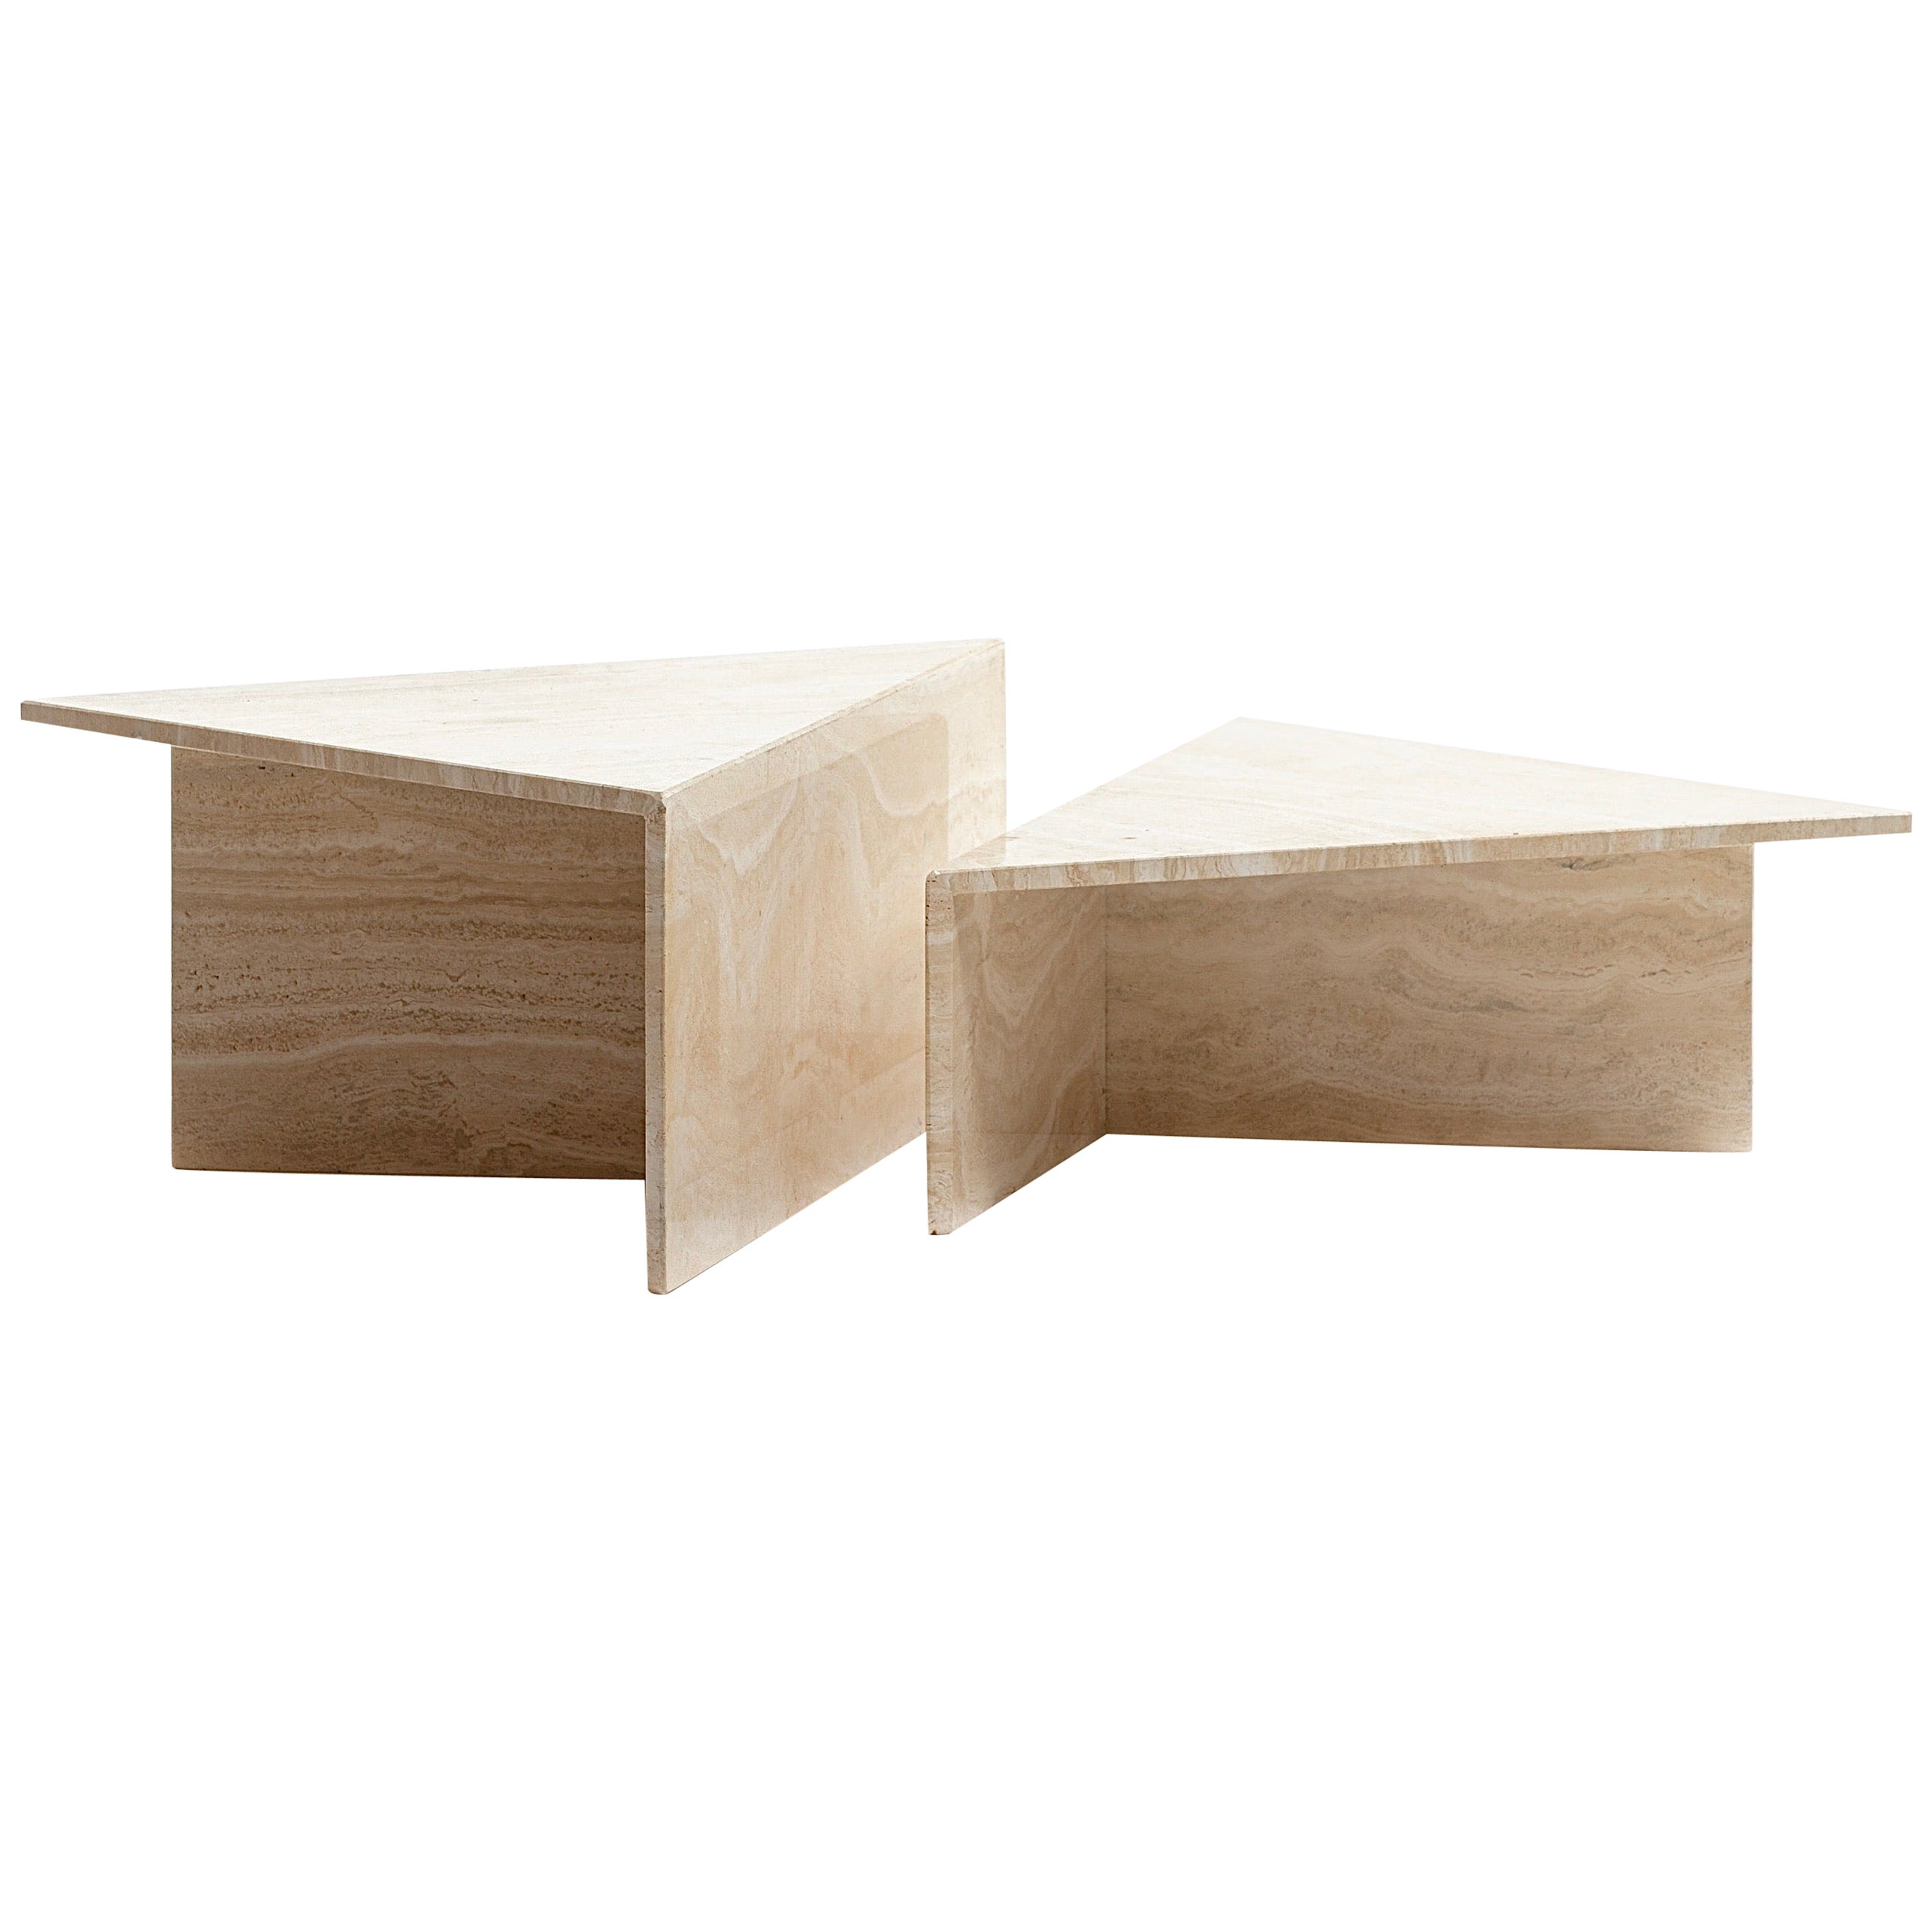 Large Italian Two Part Travertine Modular Coffee Table by Up & Up, circa 1970s